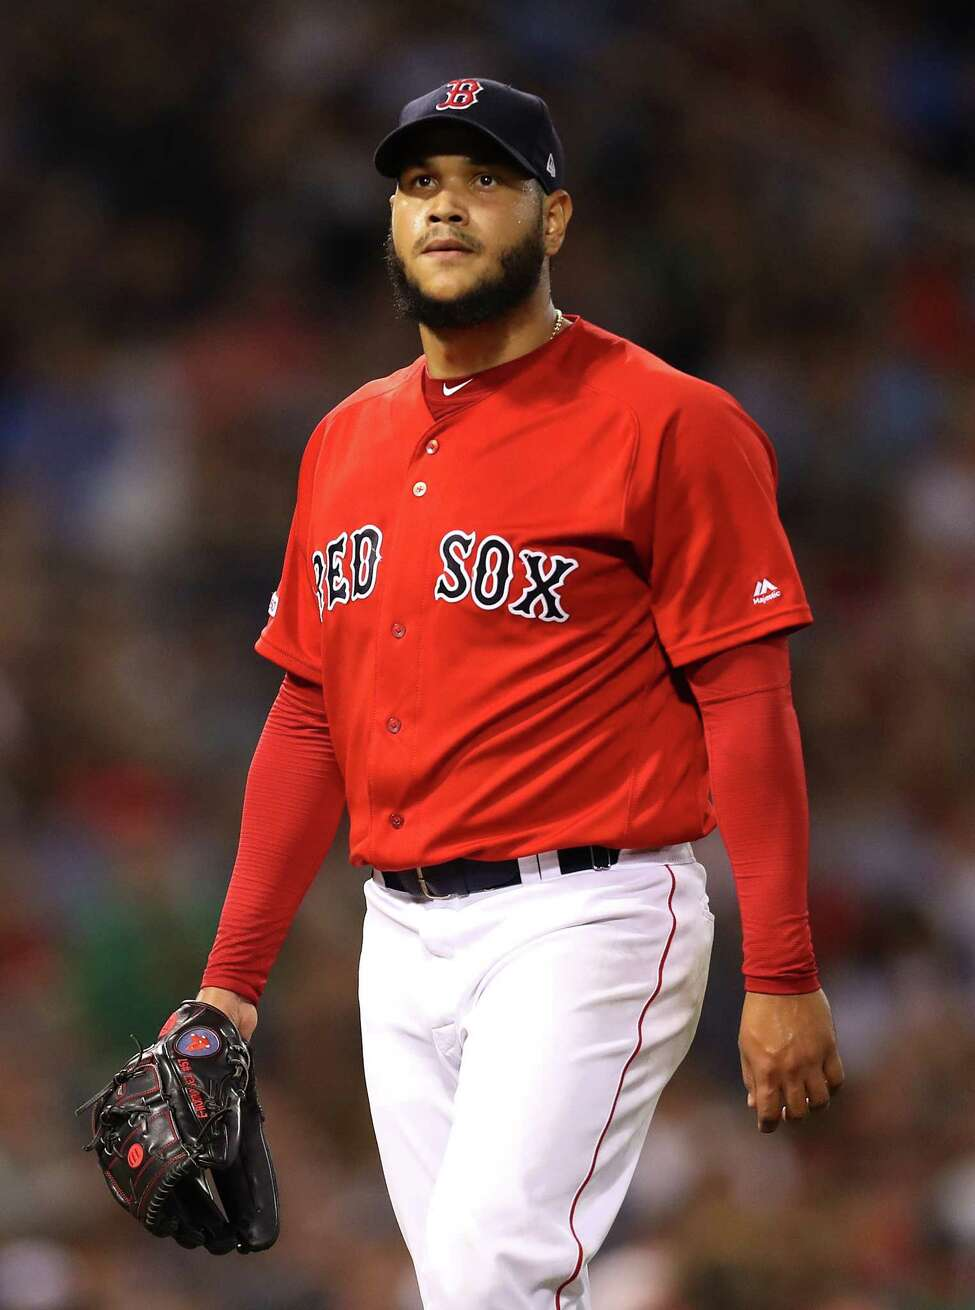 BOSTON, MASSACHUSETTS - AUGUST 17: Eduardo Rodriguez #57 of the Boston Red Sox exits the game after pitching during the seventh inning against the Baltimore Orioles at Fenway Park on August 17, 2019 in Boston, Massachusetts. (Photo by Maddie Meyer/Getty Images)